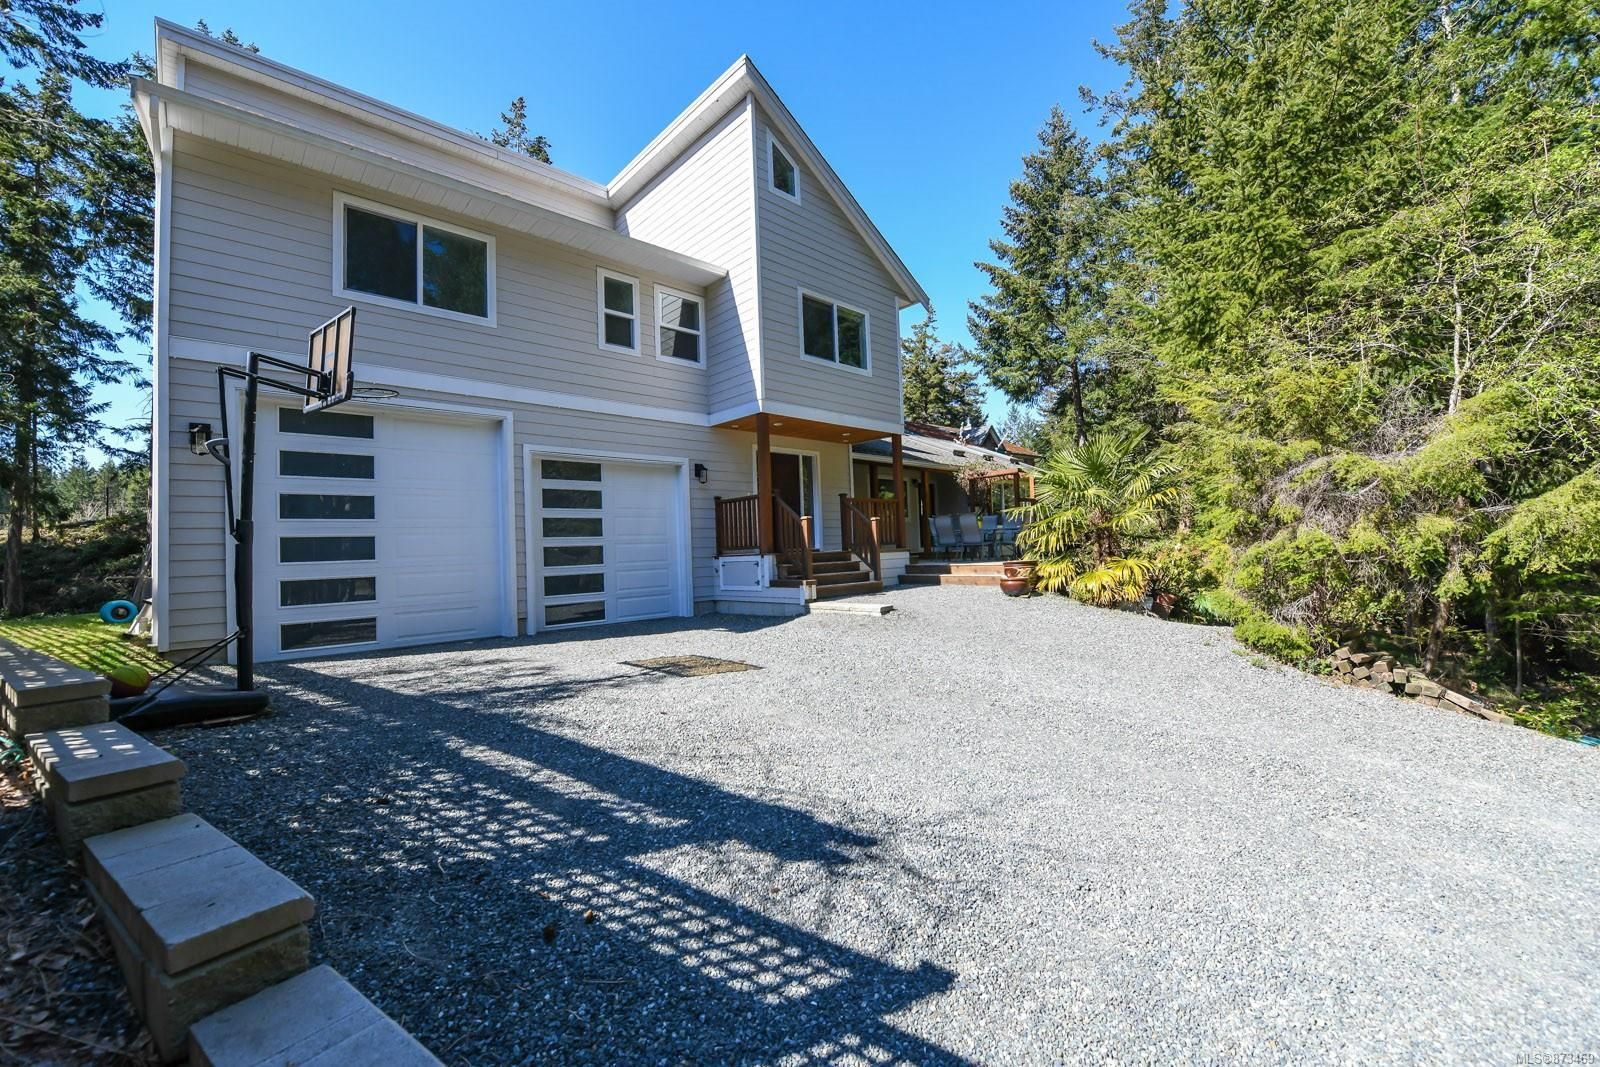 Main Photo: 737 Sand Pines Dr in : CV Comox Peninsula House for sale (Comox Valley)  : MLS®# 873469